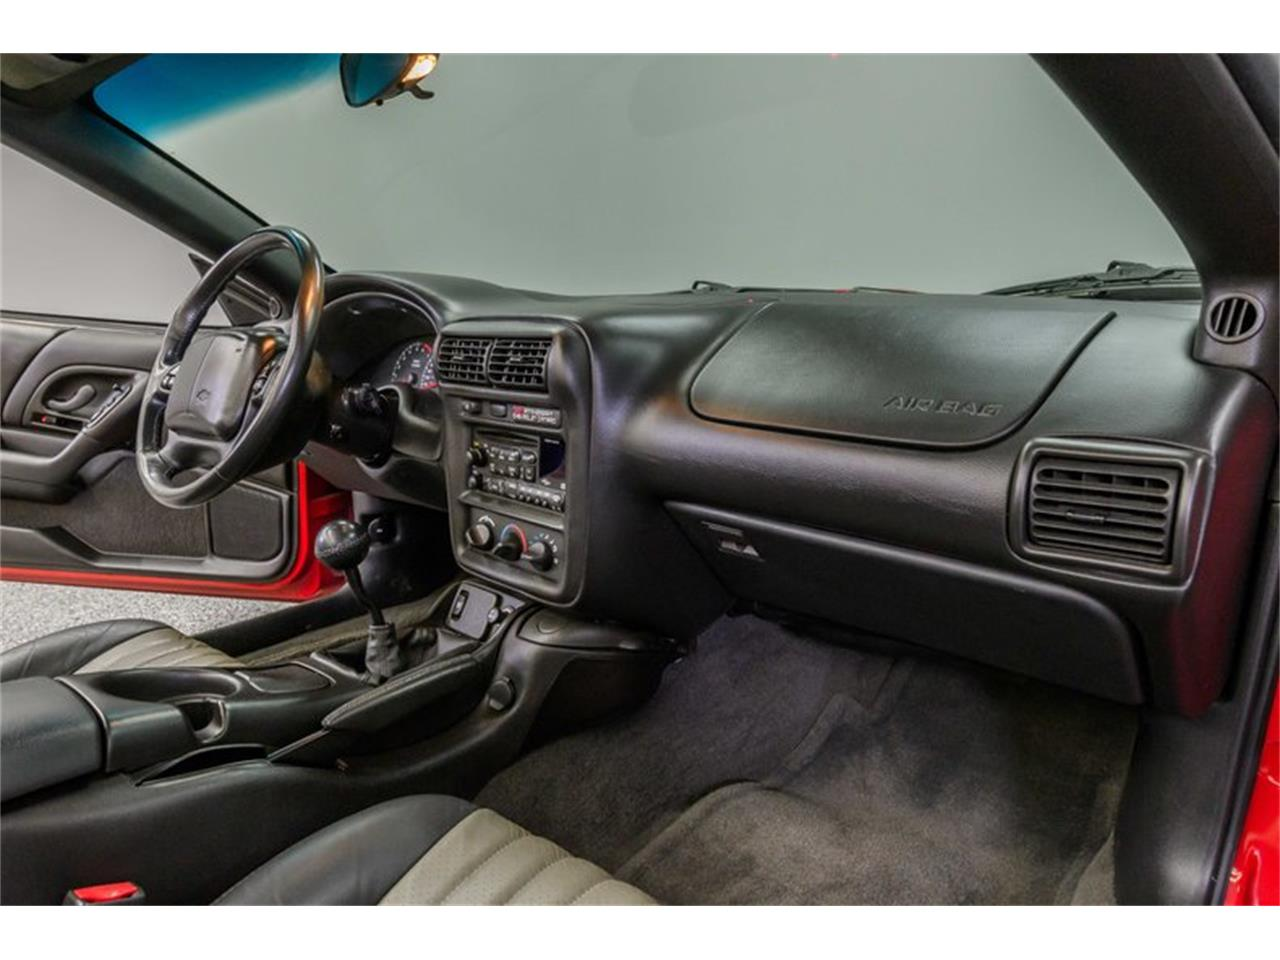 Large Picture of '02 Chevrolet Camaro - $19,995.00 Offered by Autobarn Classic Cars - Q3LH